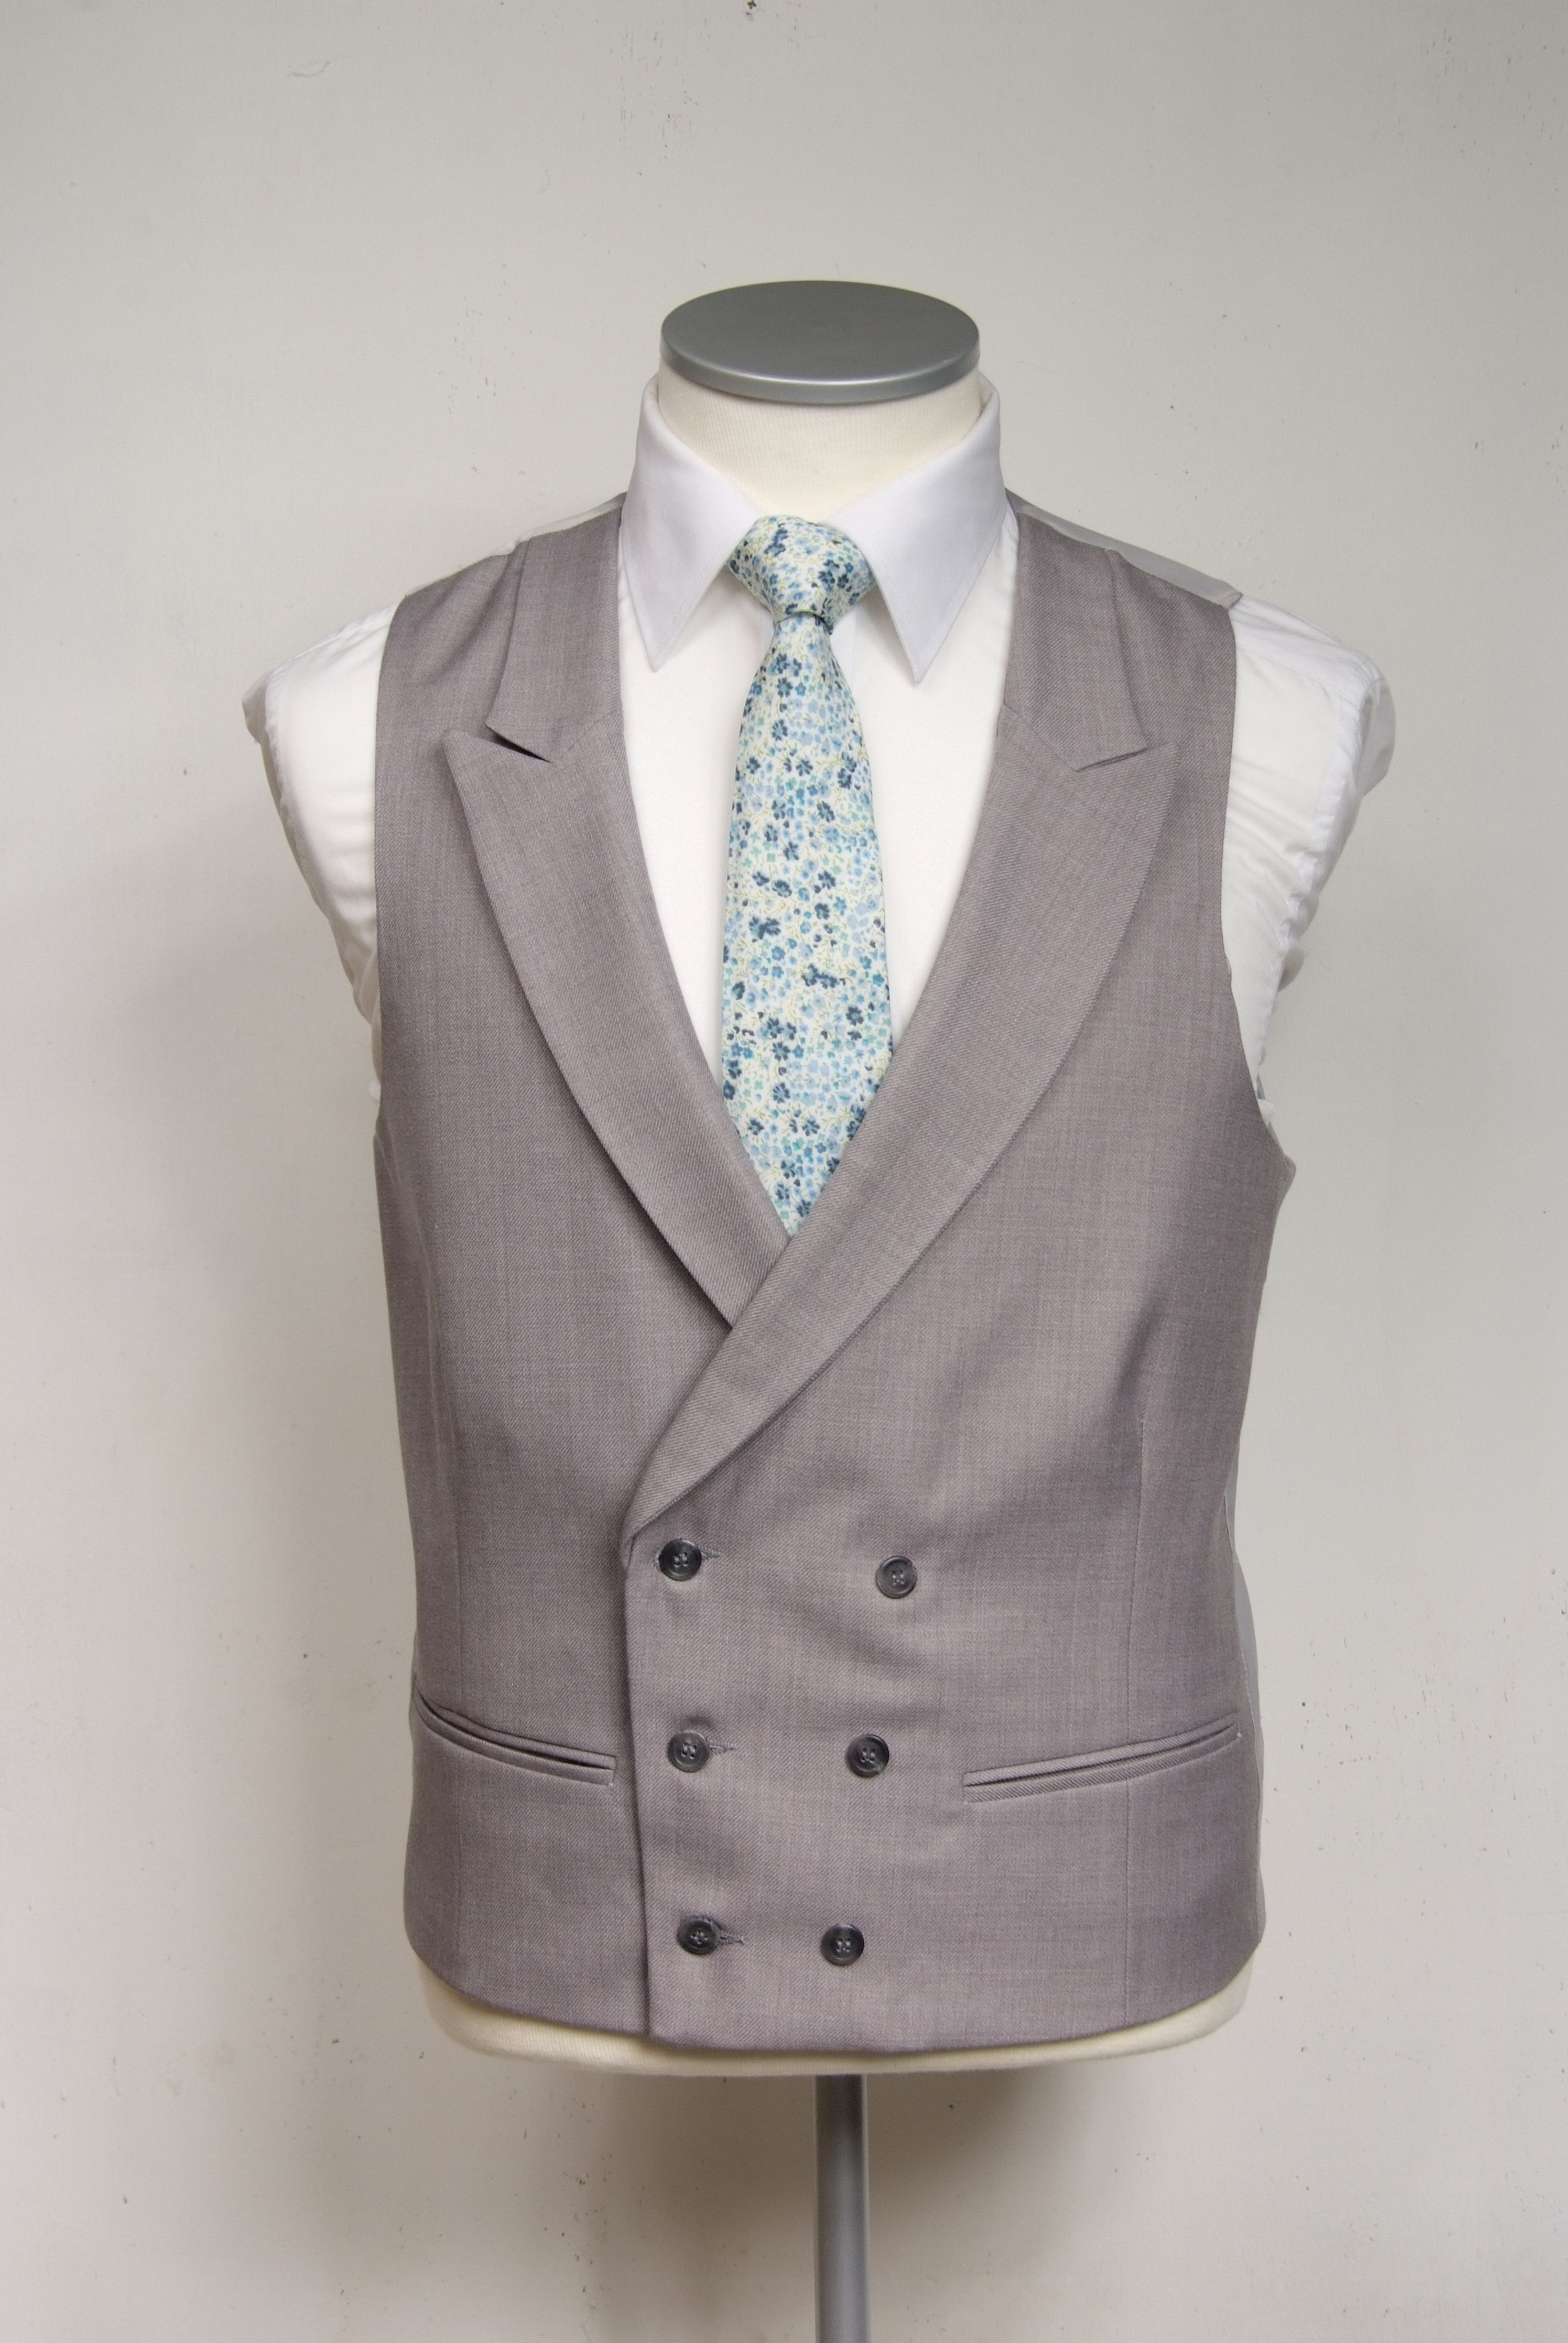 Blue liberty floral print tie £39.50 with grey double breasted waistcoat  £90.00 #groom